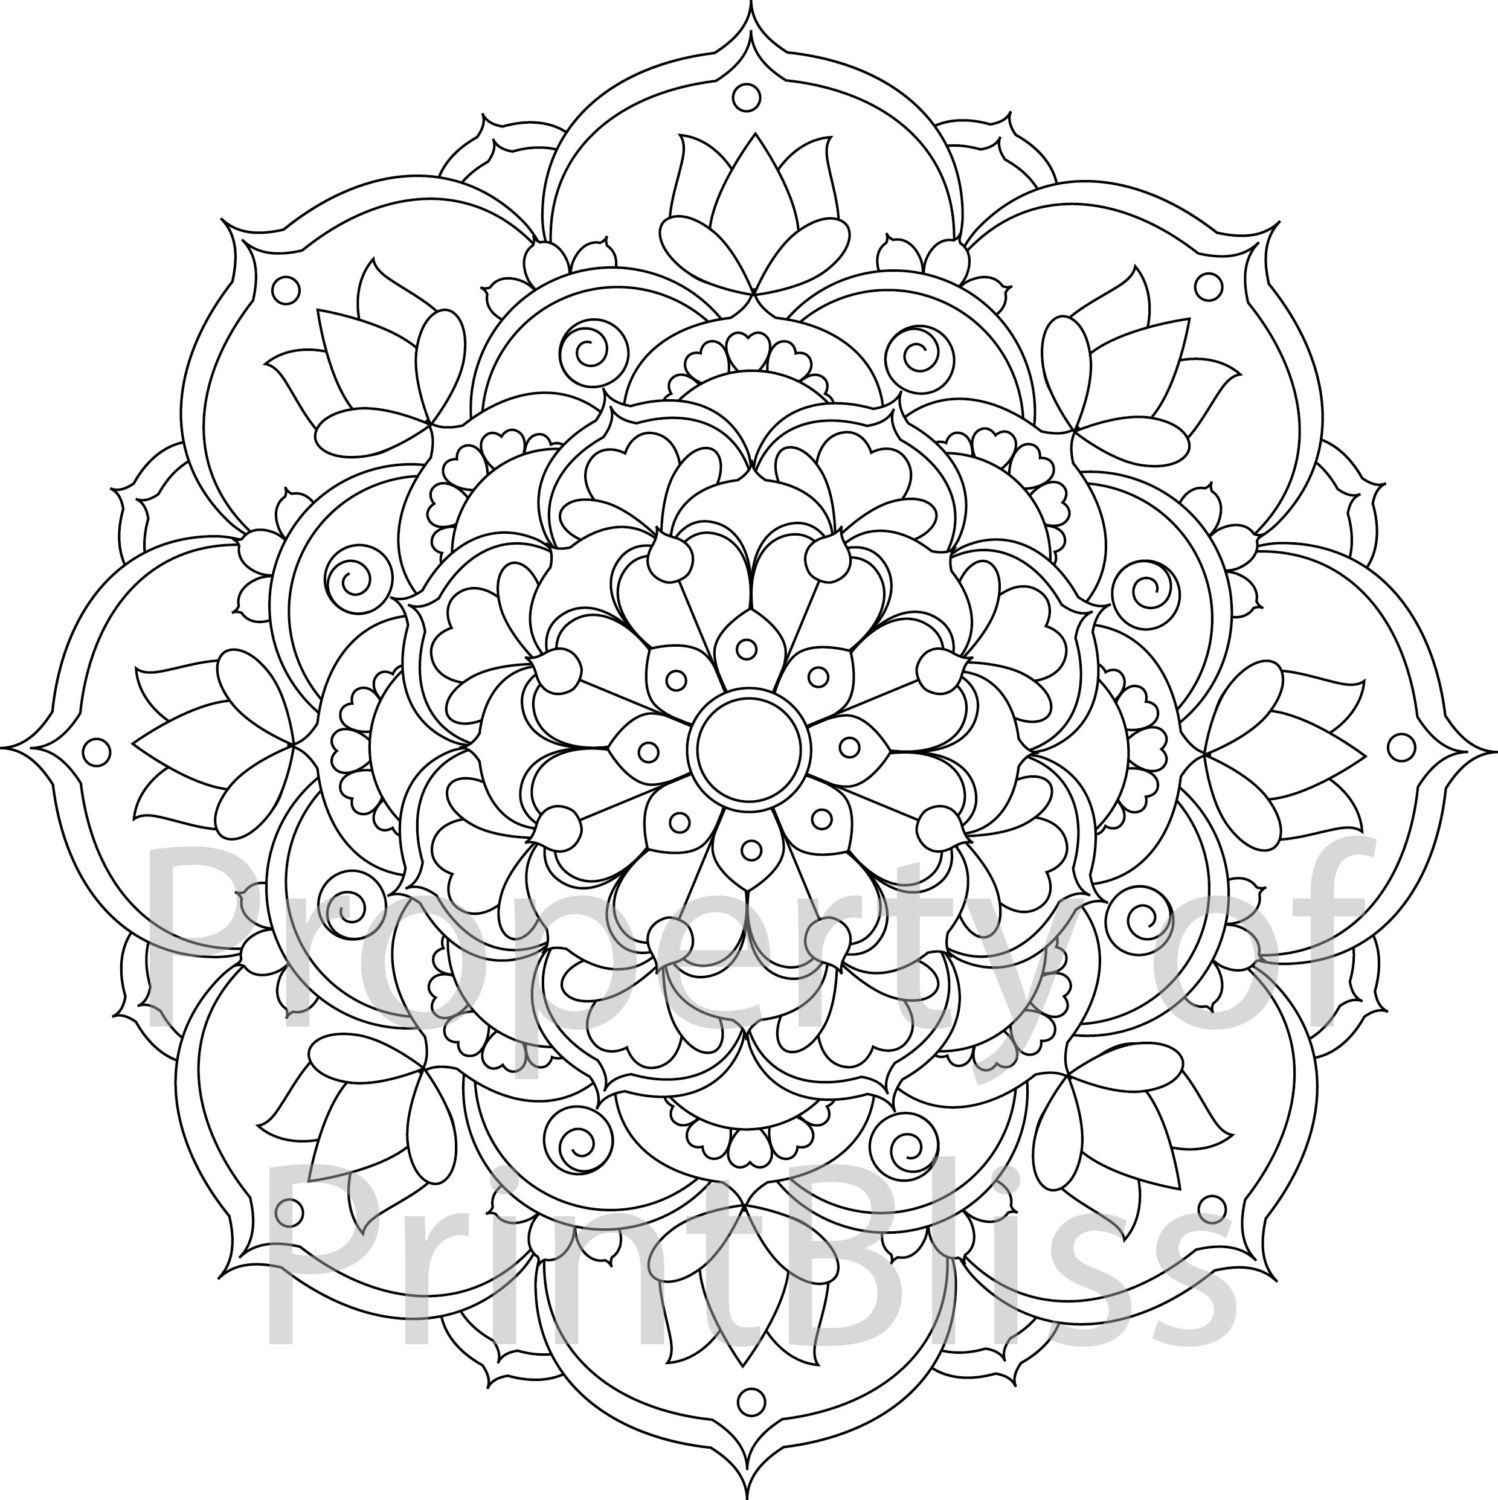 24 flower mandala printable coloring page by printbliss on etsy art my work mandala. Black Bedroom Furniture Sets. Home Design Ideas